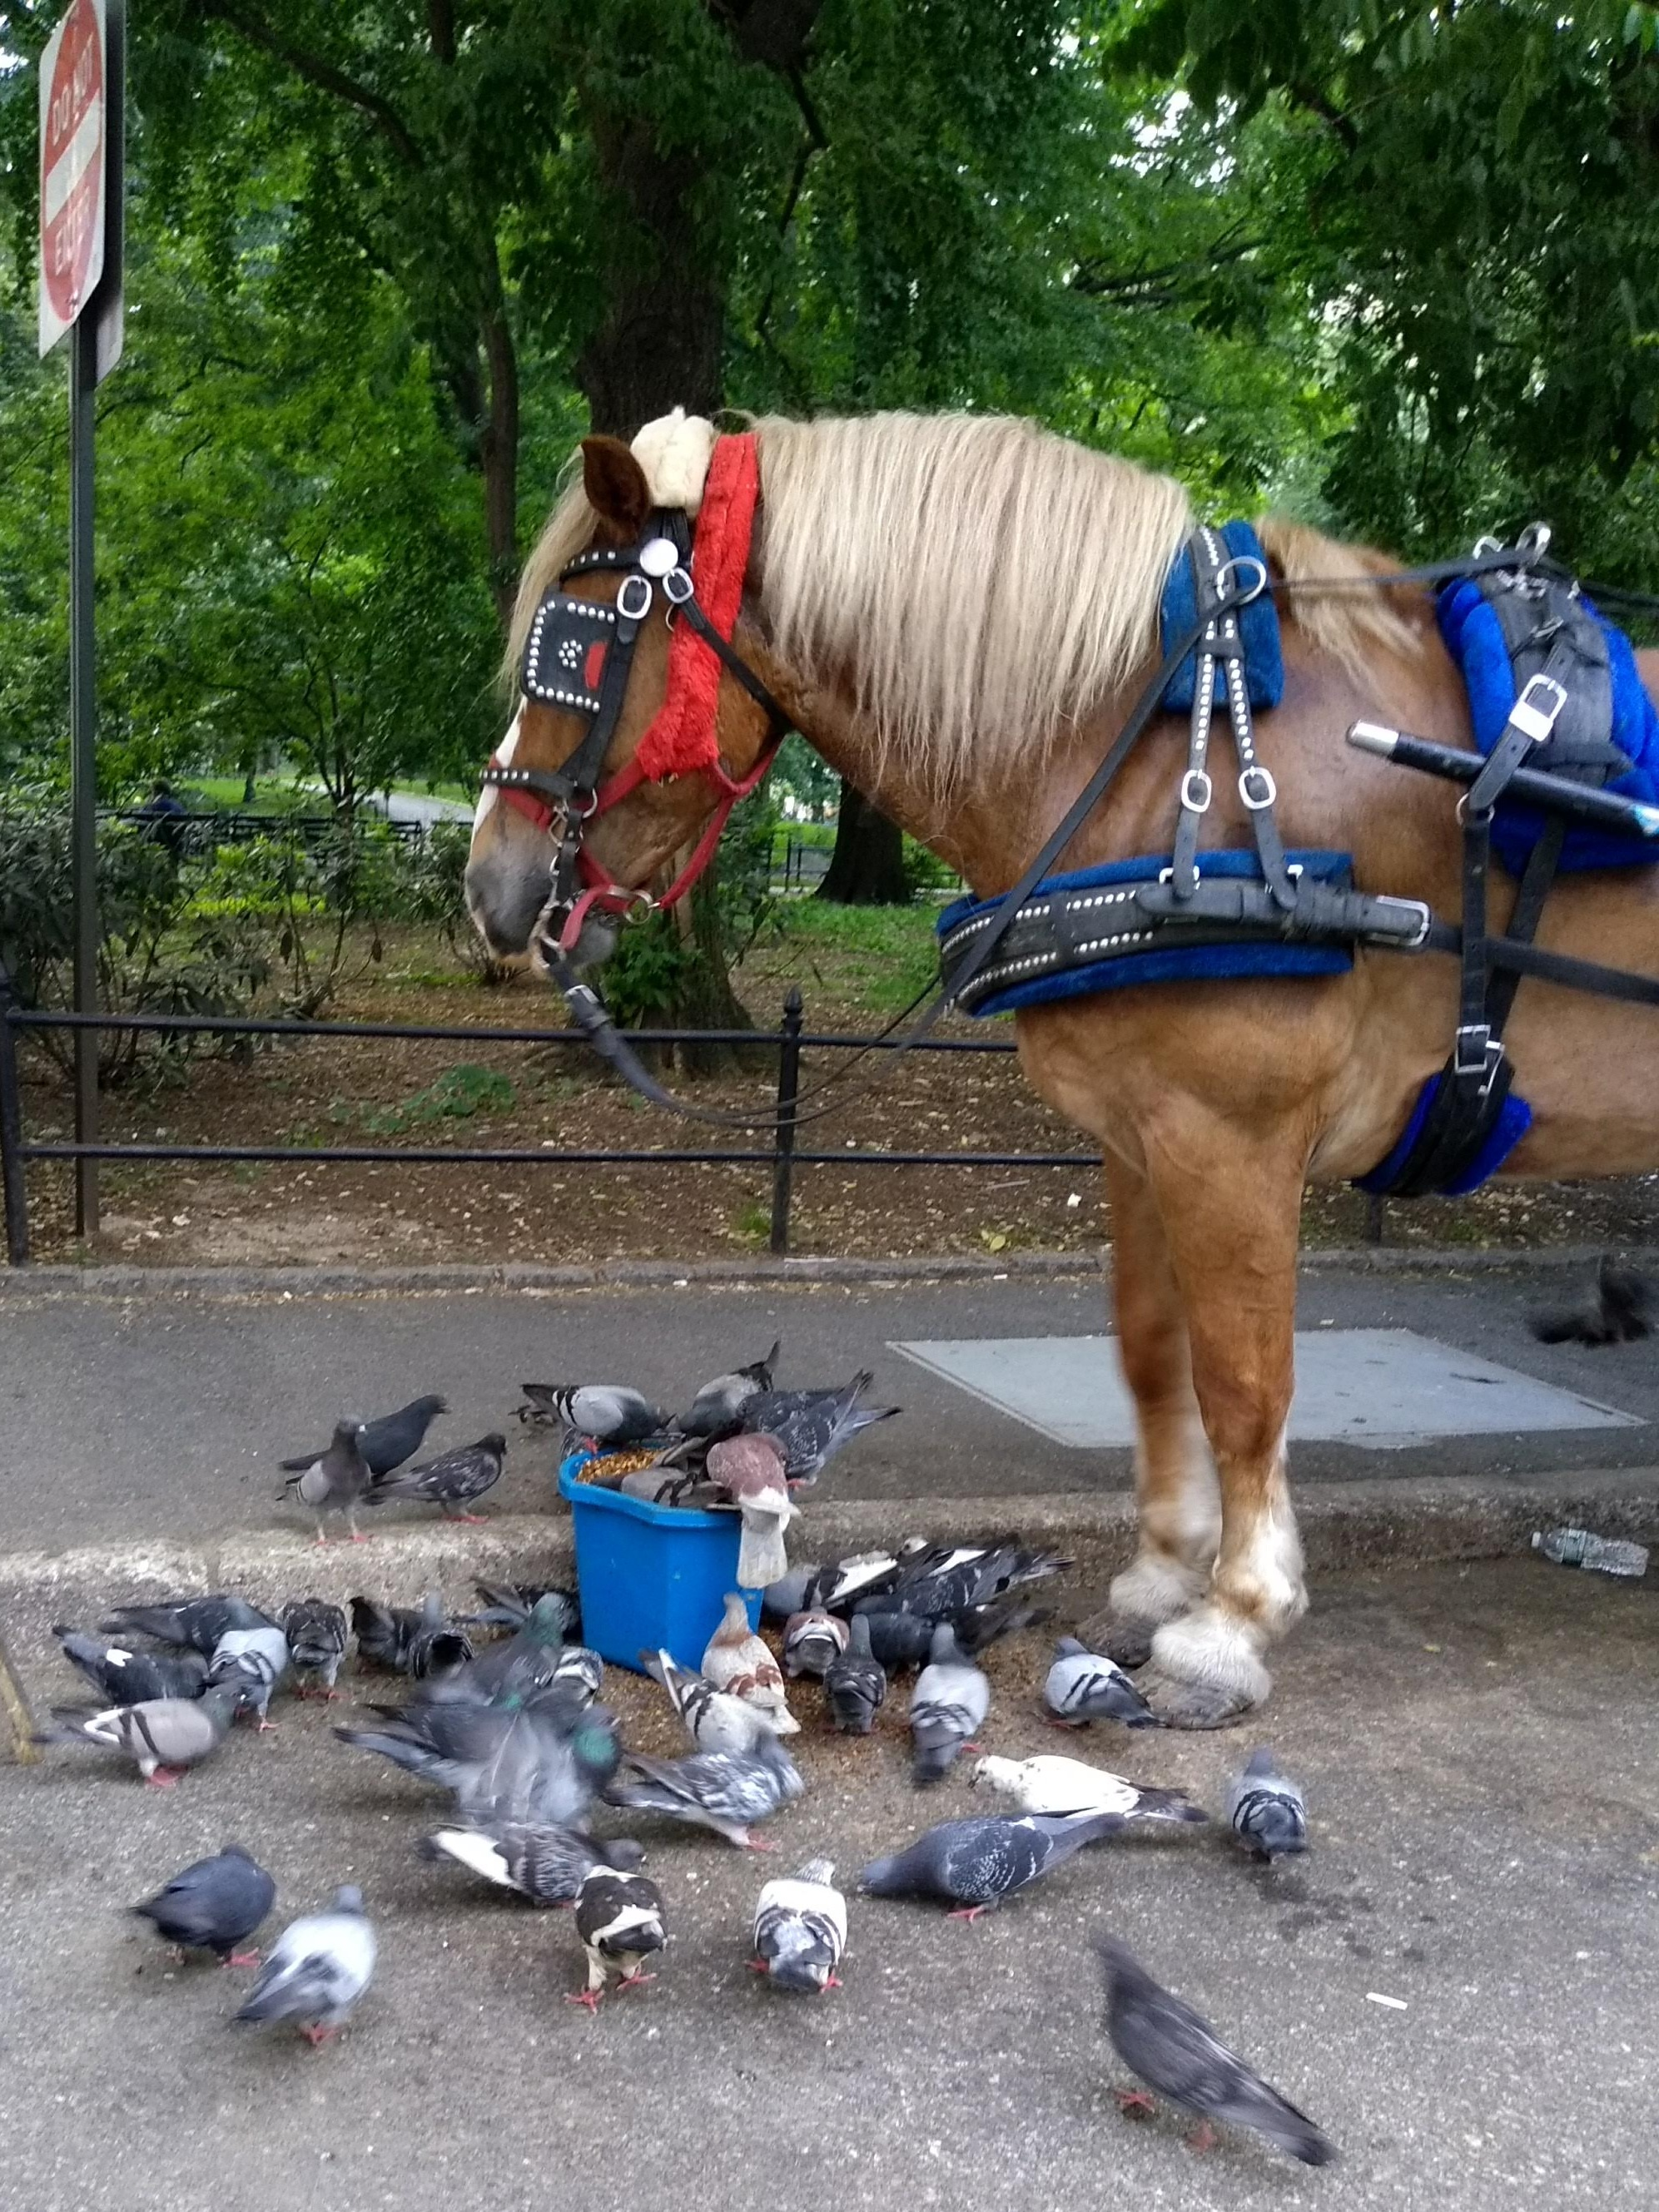 the horse sharing grain with the pigeons